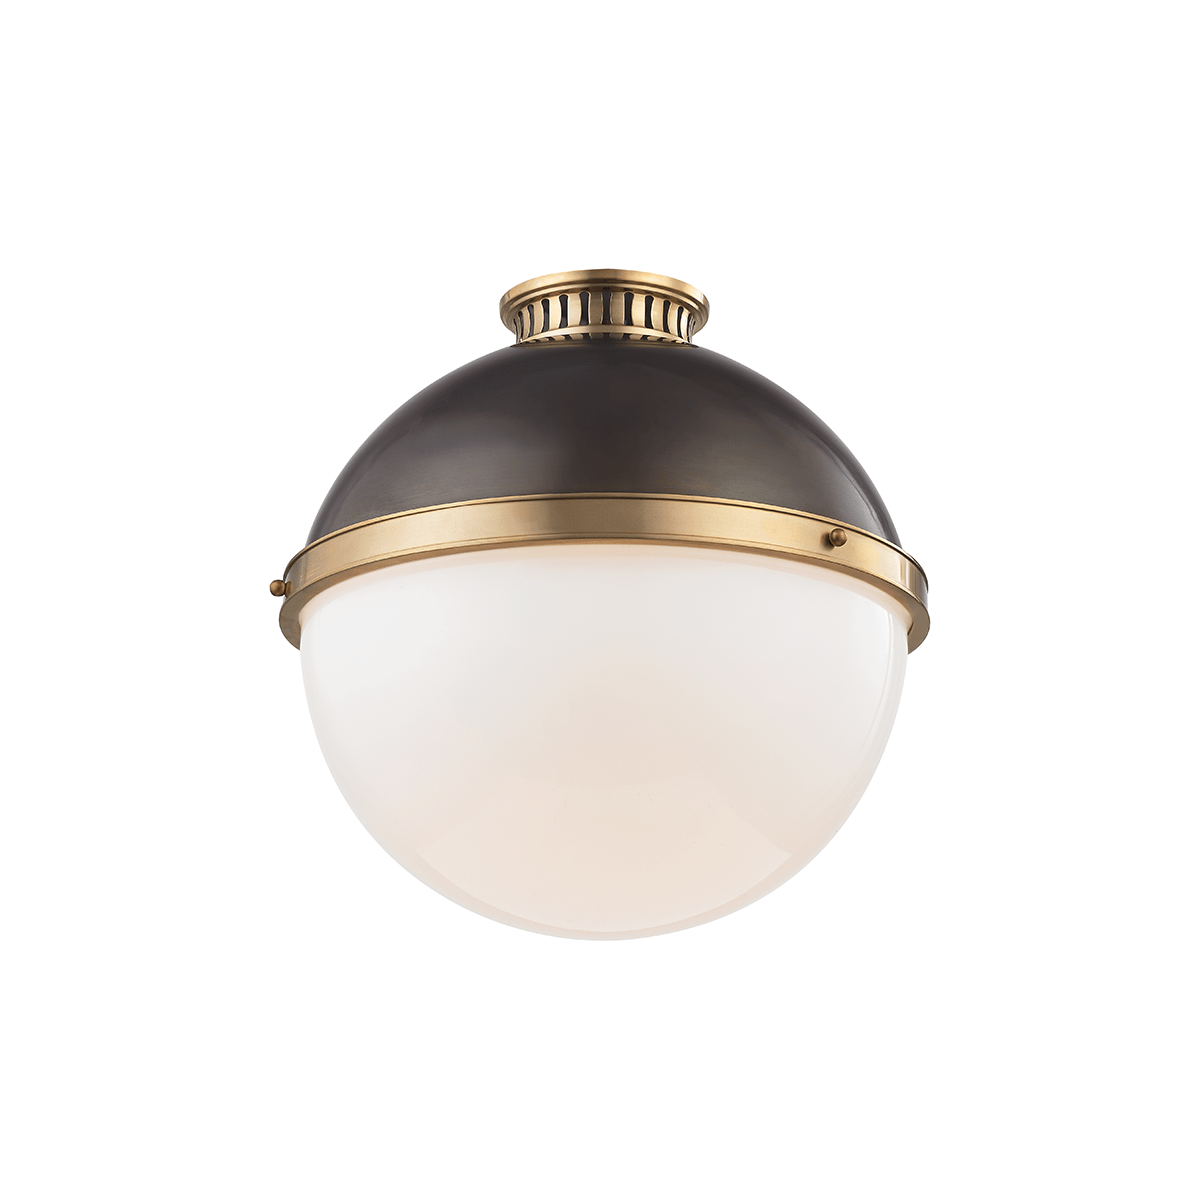 Hudson Valley Lighting Hudson Valley Lighting Latham Ceiling Lamp - Antique Distressed Bronze & Opal Shiny 4015-ADB